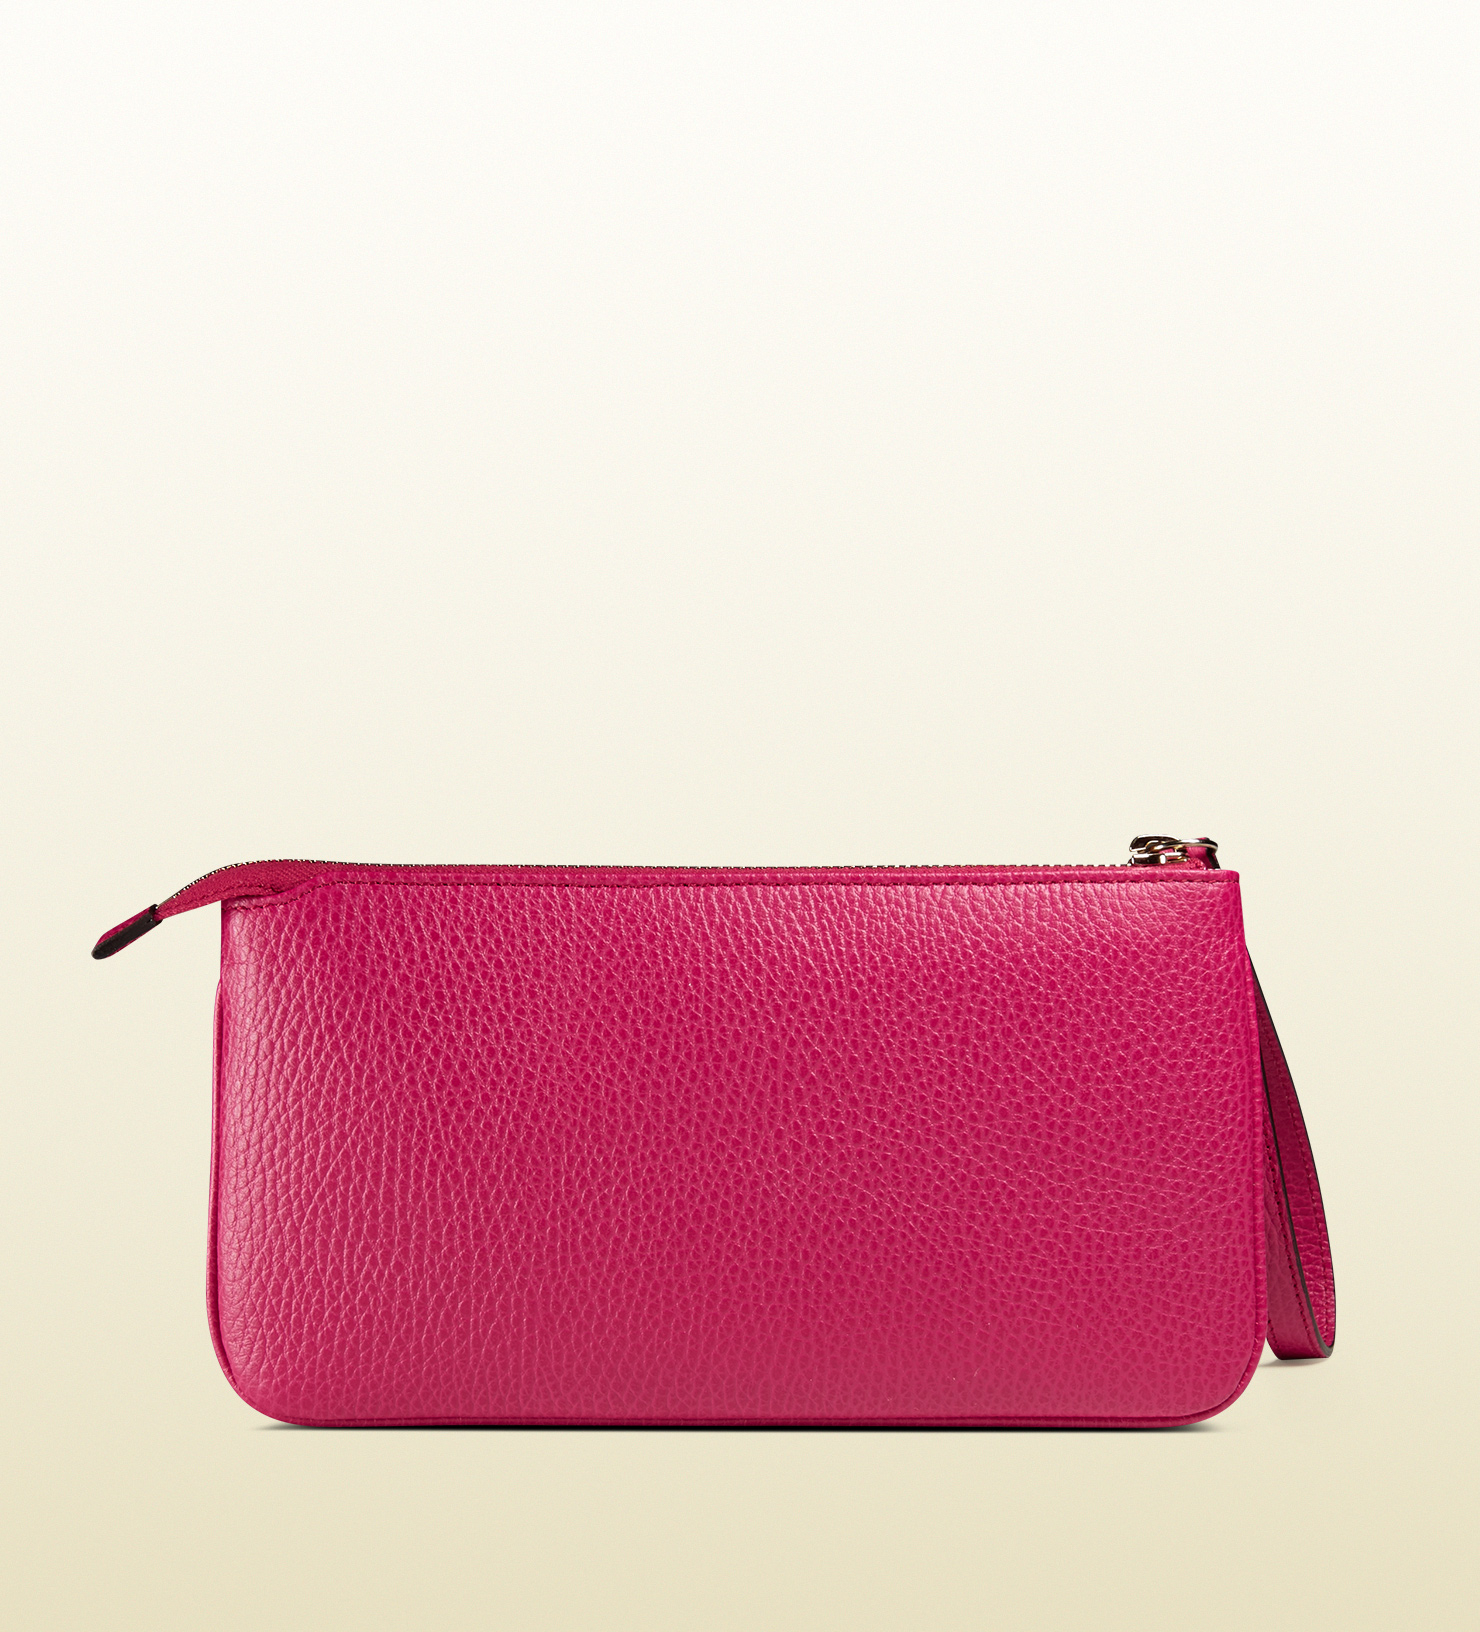 0f8b98021e0 Lyst - Gucci Swing Leather Wristlet in Pink